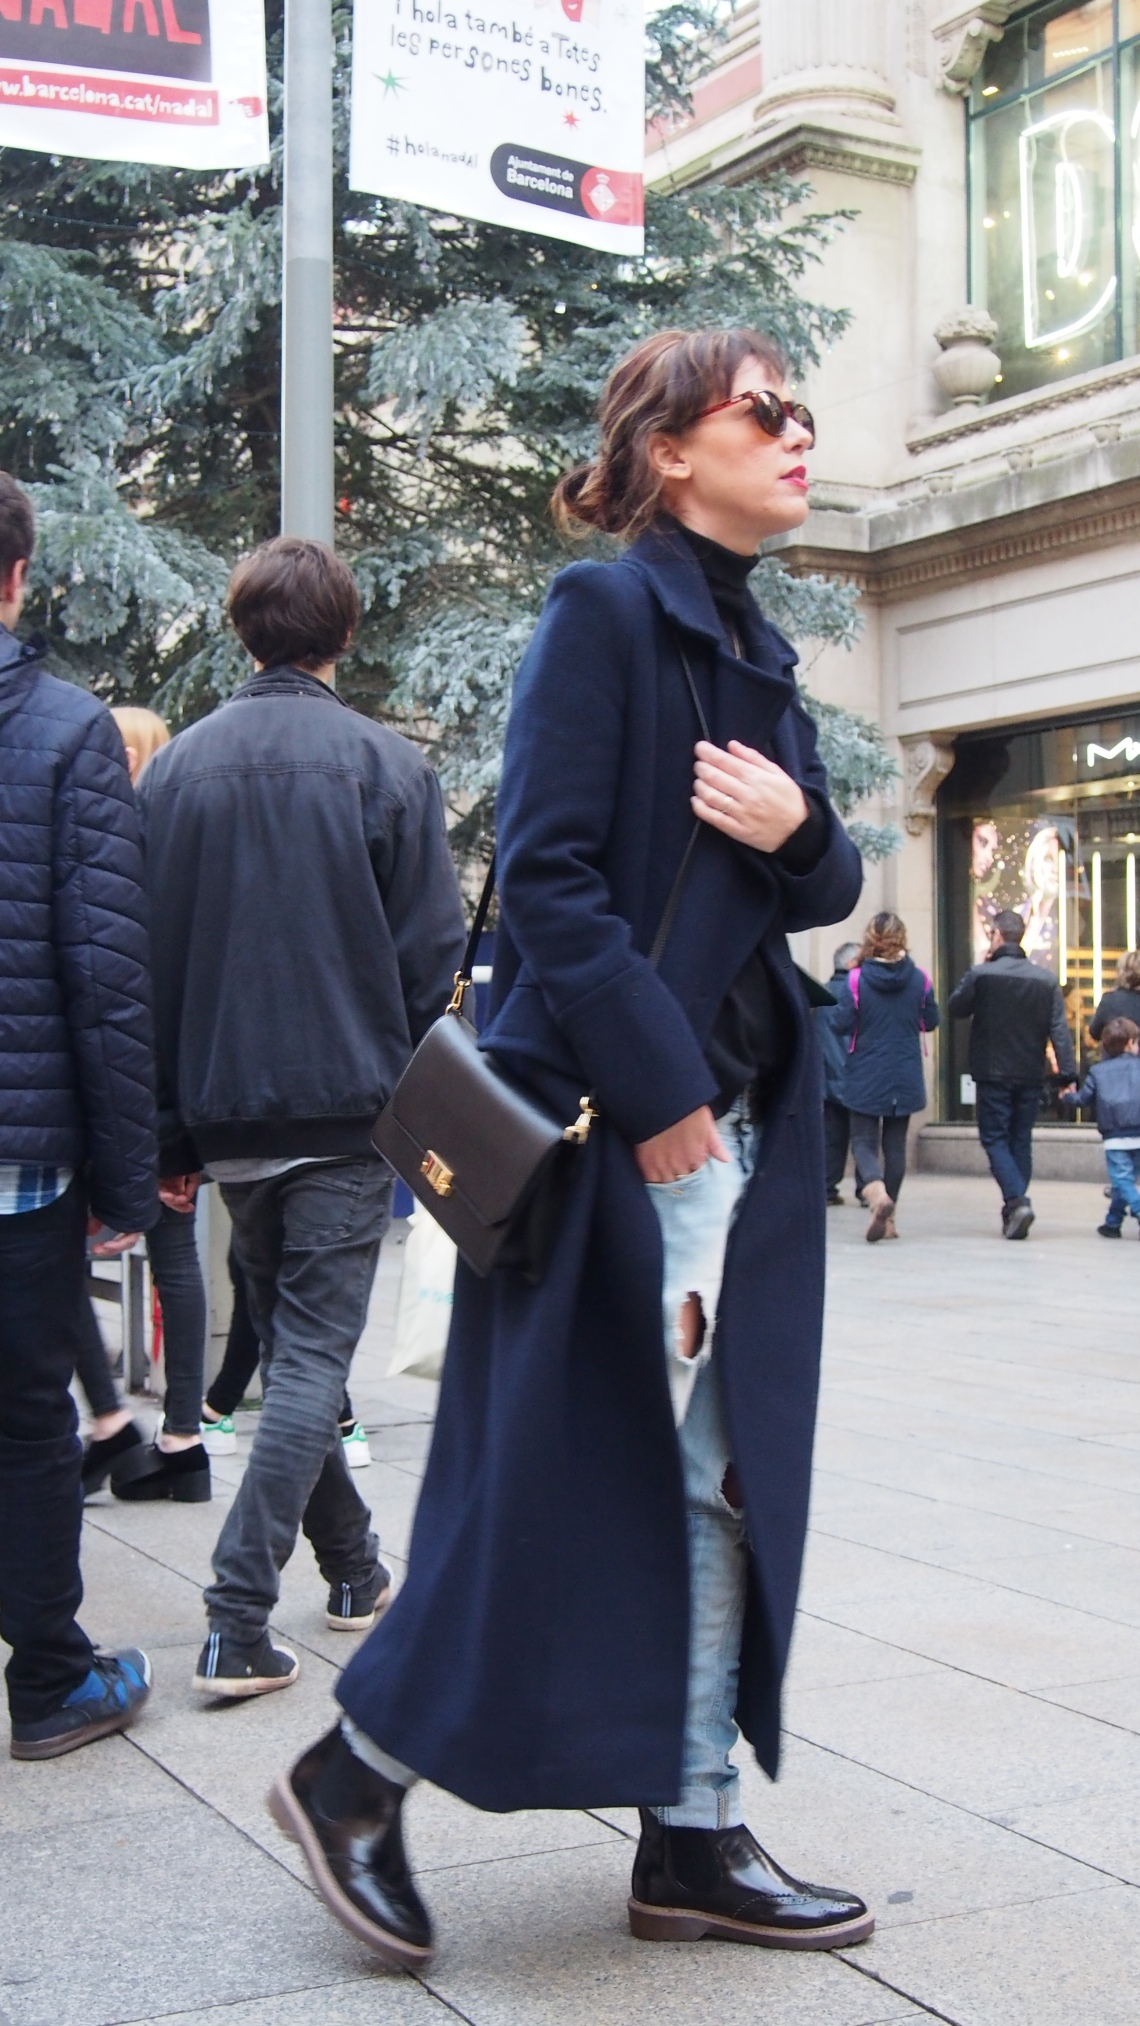 long coat normcore girl oxford boots influencer